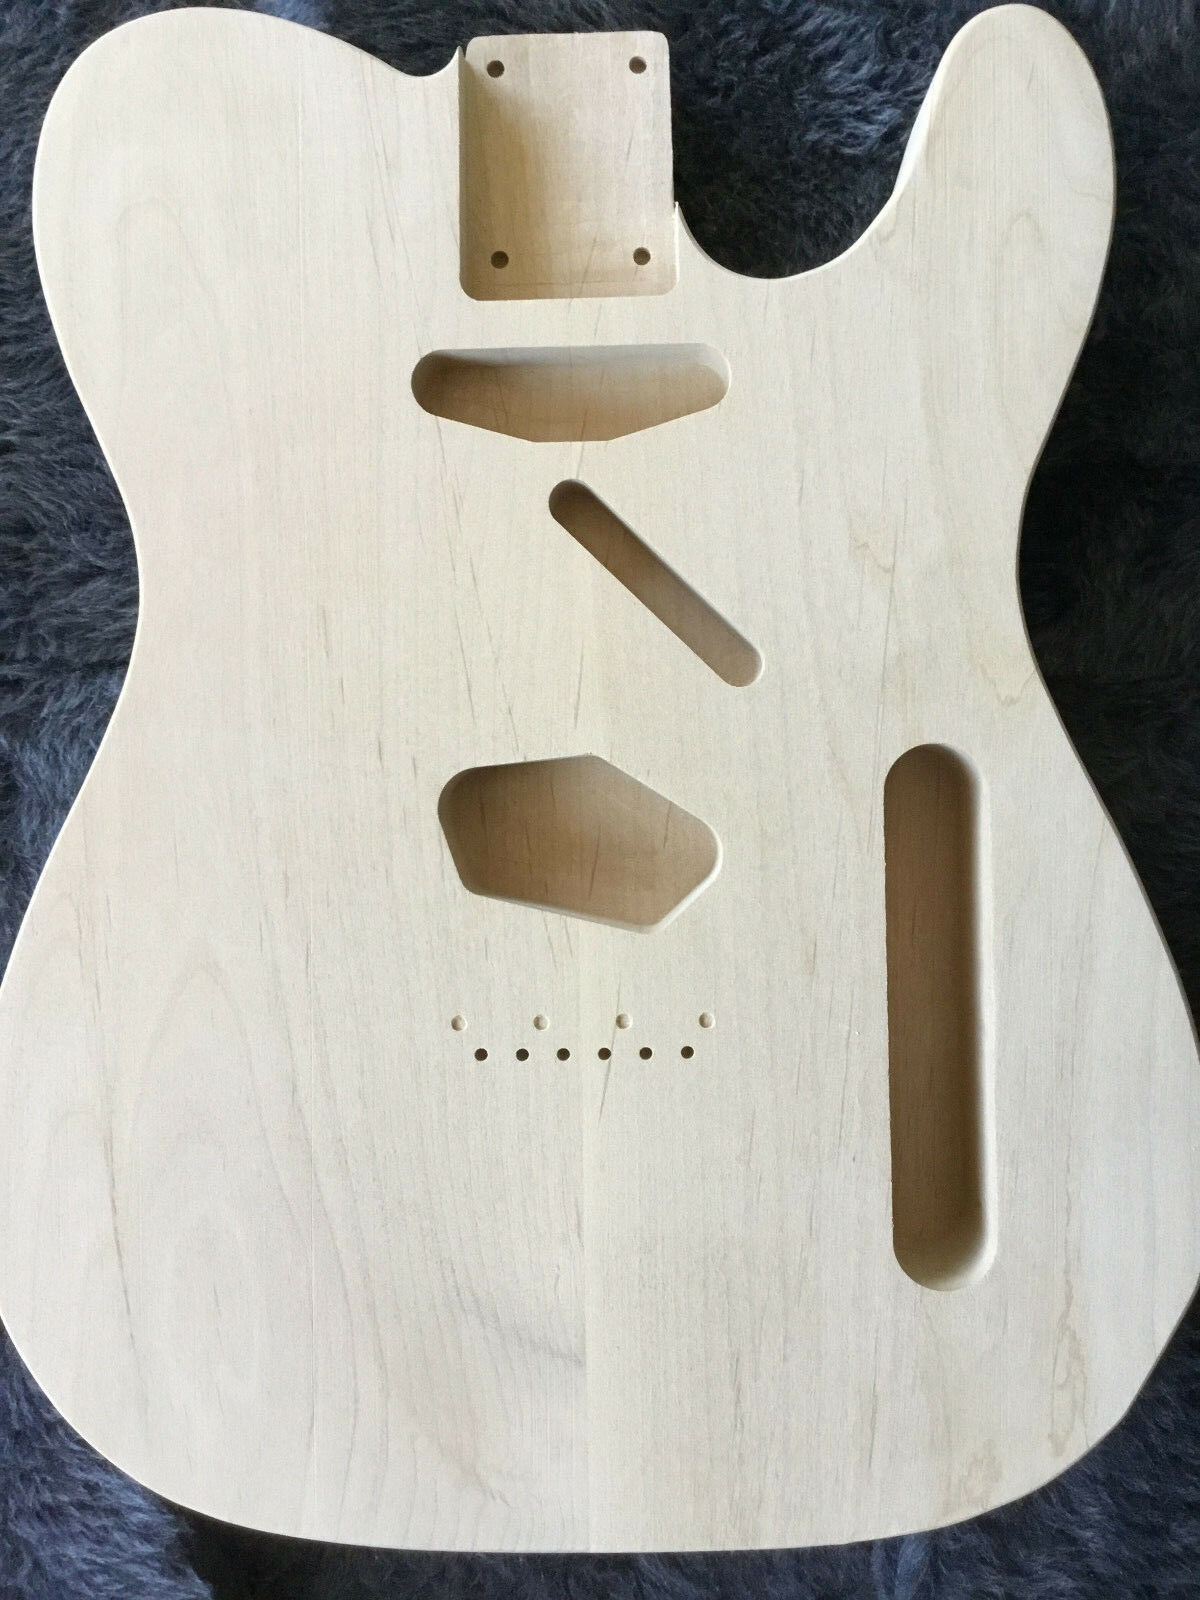 Telecaster Guitar Body USA made Prem Alder HB P90 FREE CURLY MAPLE NECK BLANK